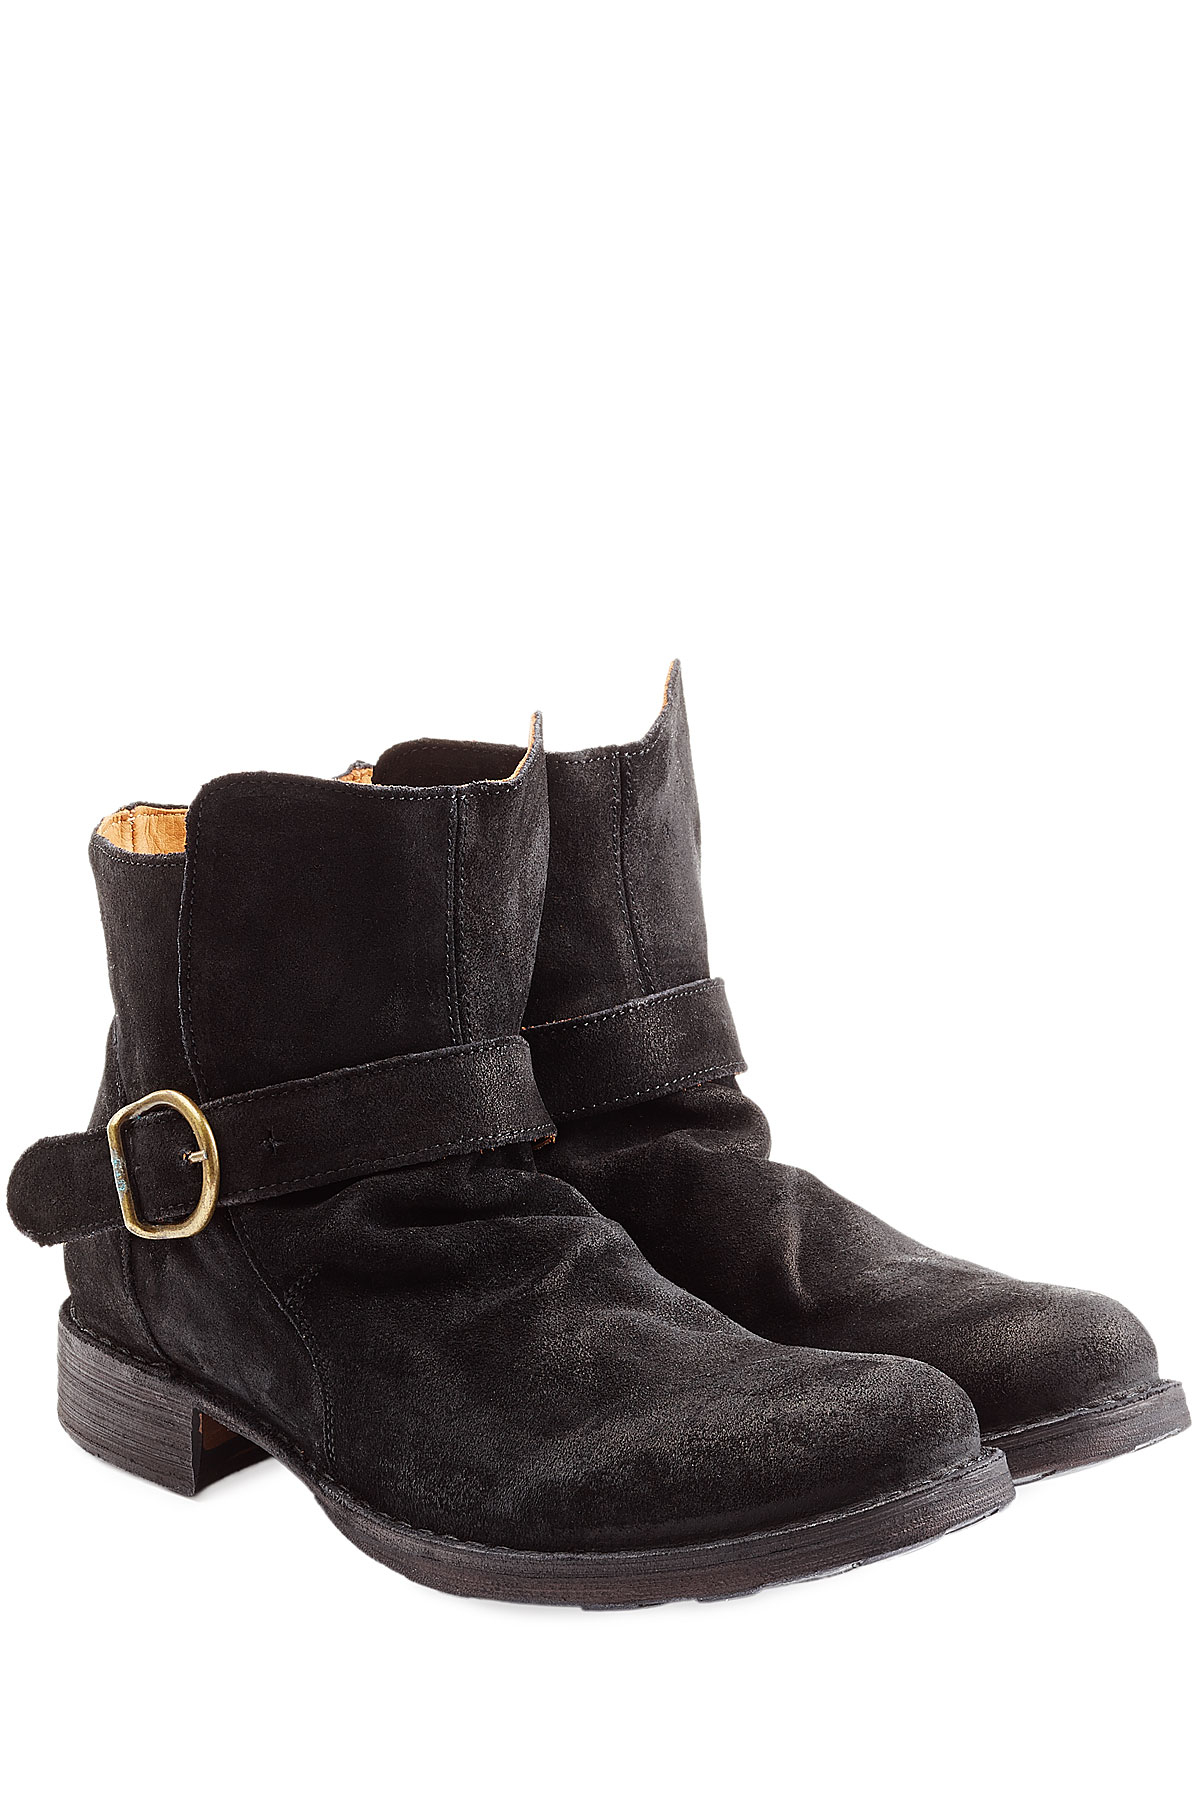 fiorentini baker suede buckle boots black in black for men save 21 lyst. Black Bedroom Furniture Sets. Home Design Ideas